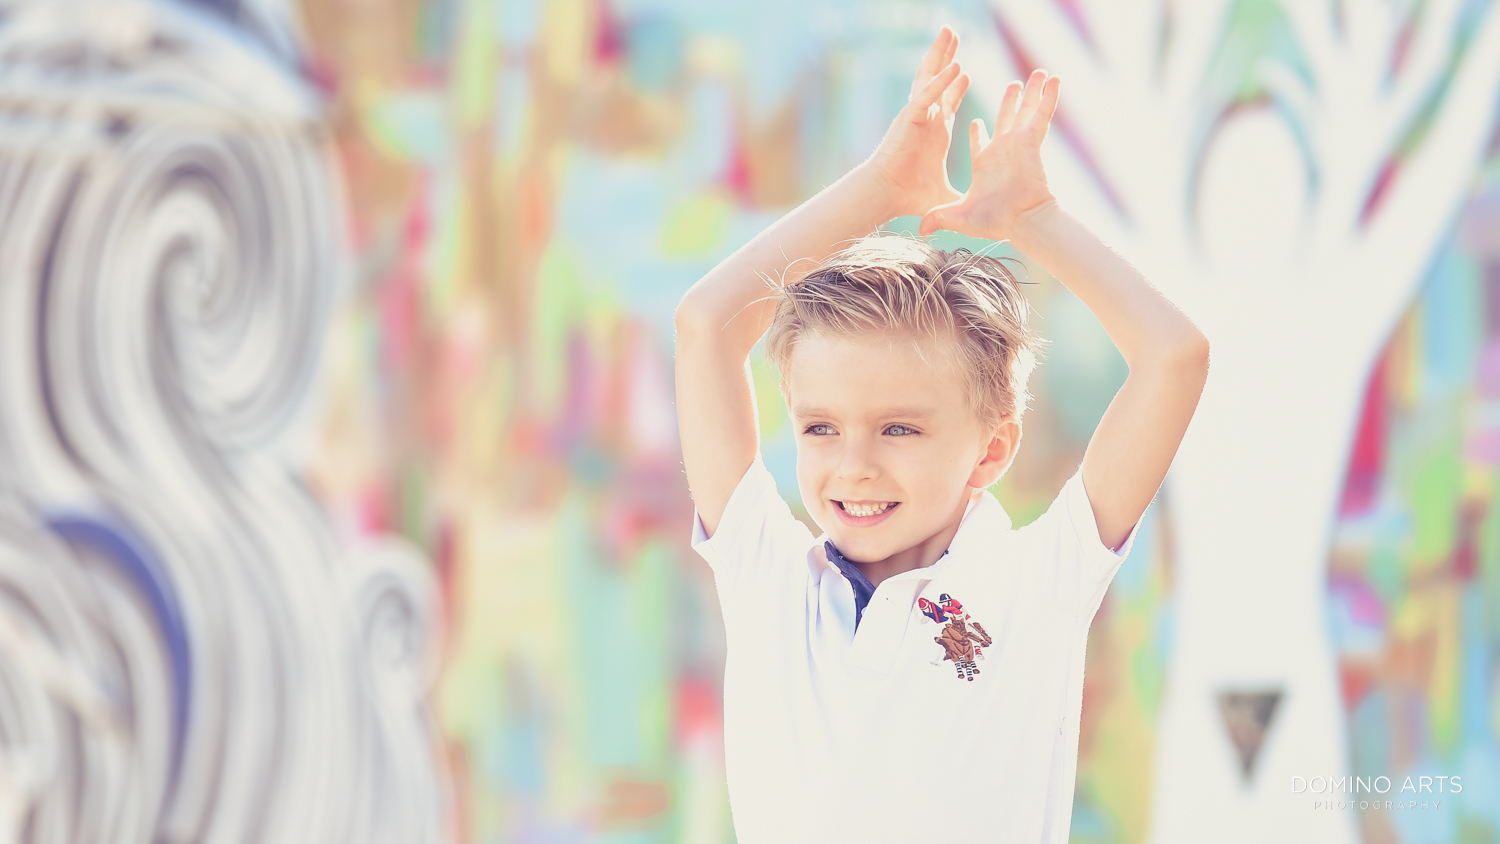 Best Professional childrens photography in Fort Lauderdale